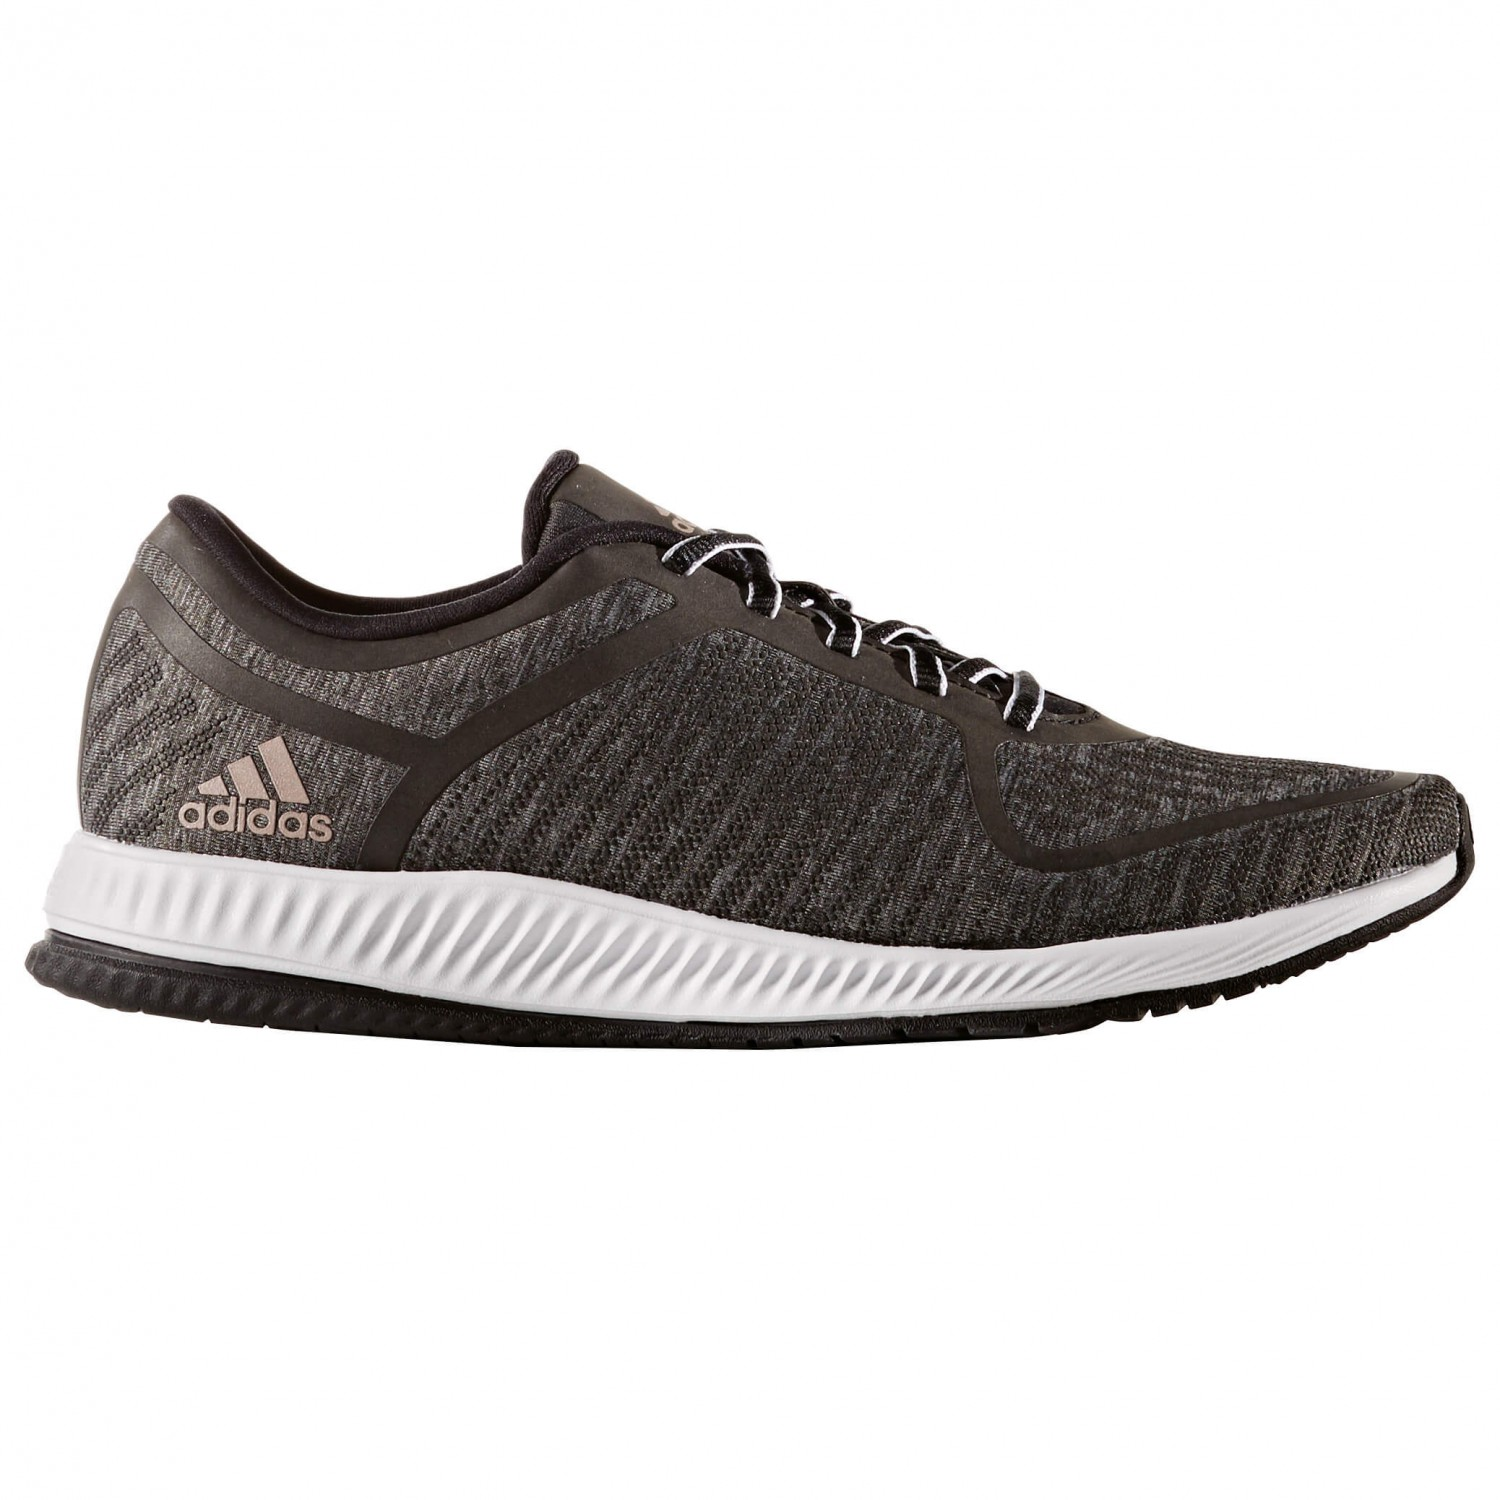 Adidas Athletics Bounce - Fitness Shoes Women s  826fd9340895